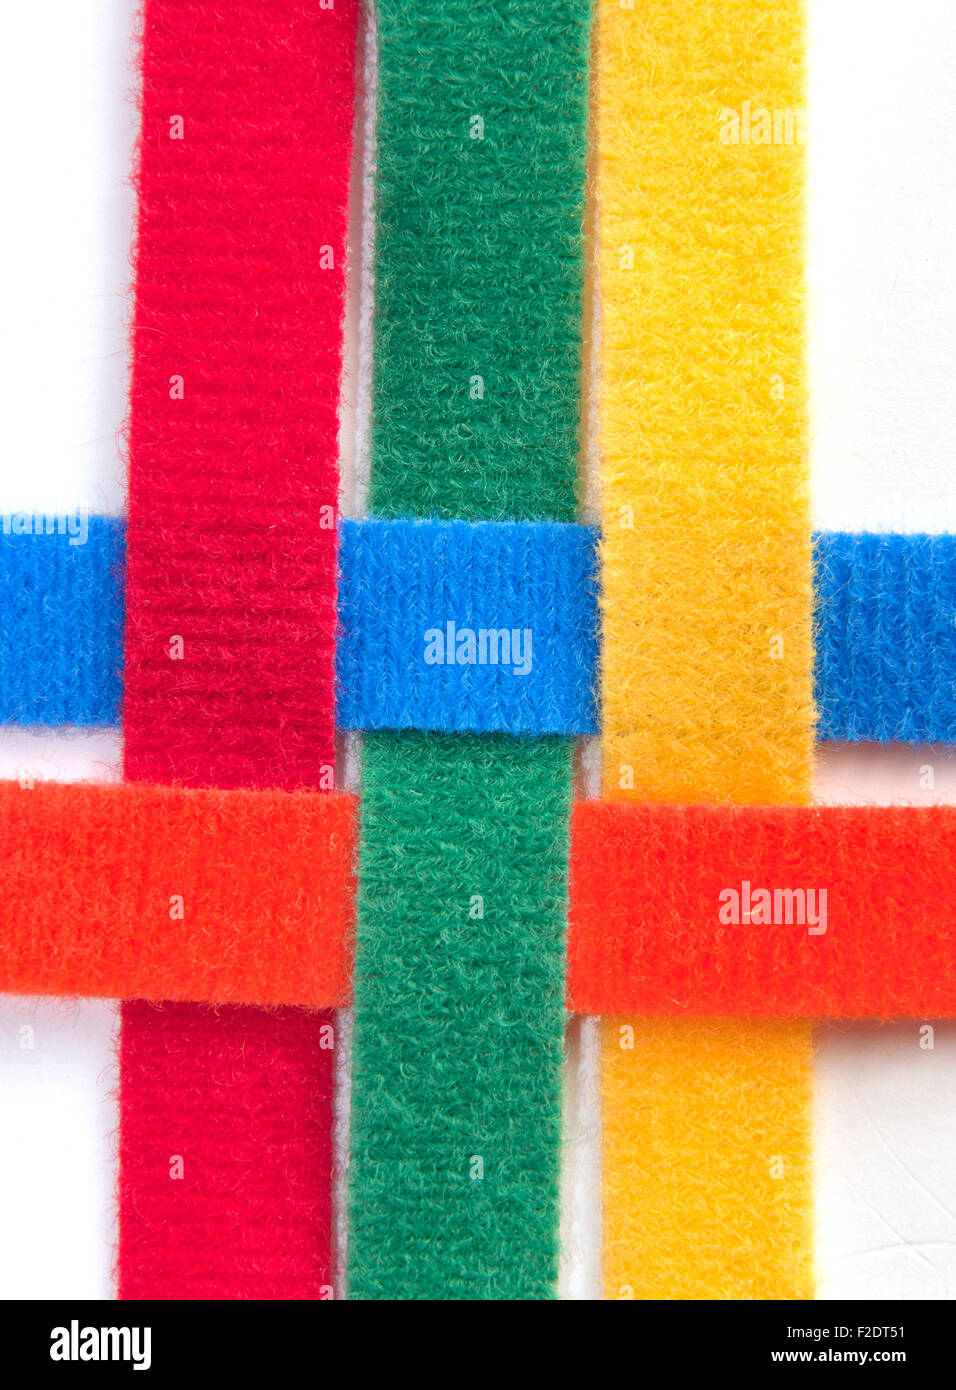 Colorful velcro strips braided together - Stock Image